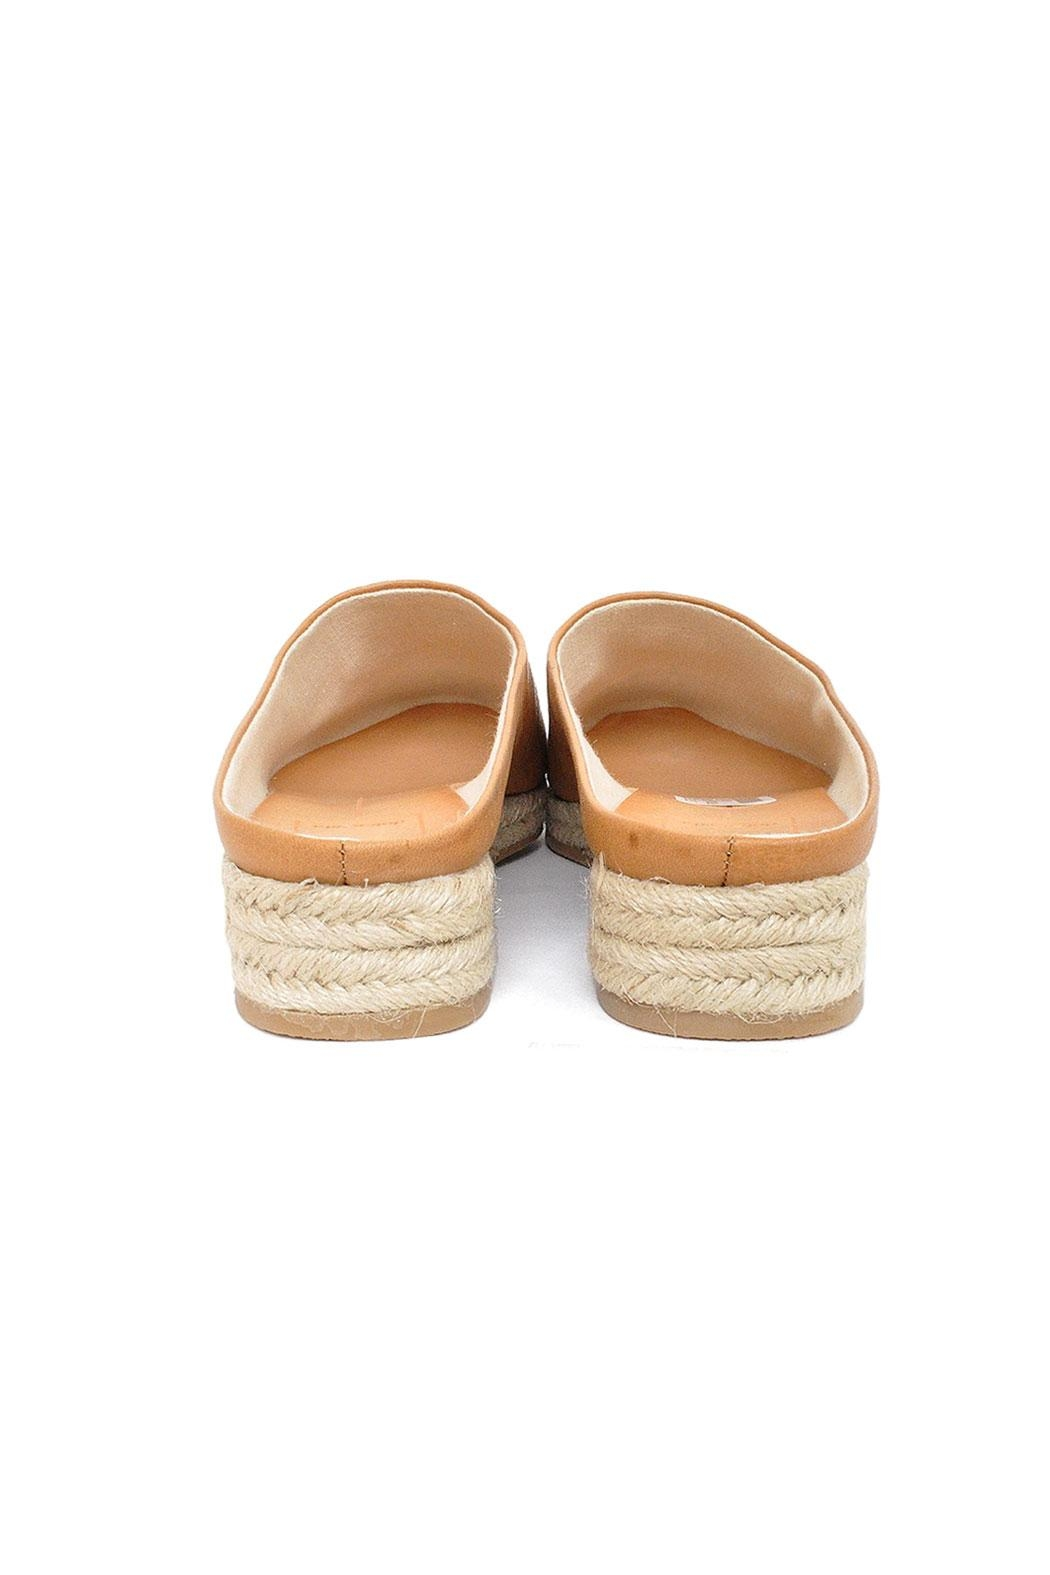 Dolce Vita Tan Leather Espadrilles - Back Cropped Image